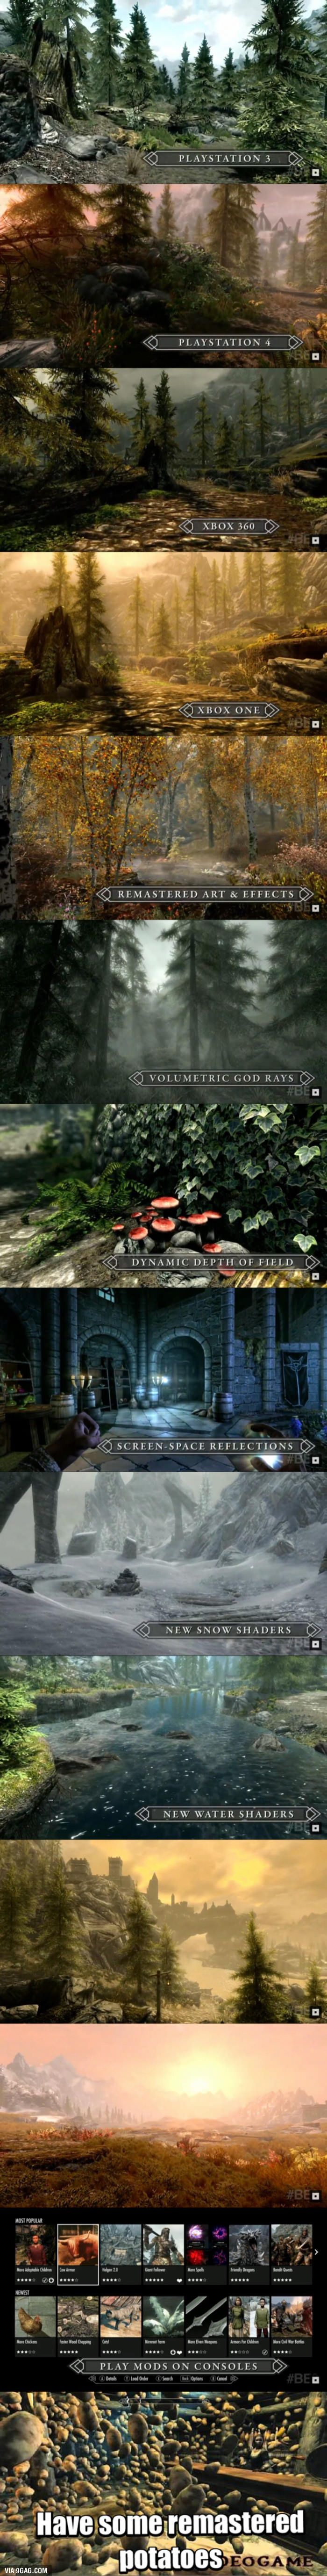 First Images For Skyrim Remastered PS4 & Xbox One! And I will get a free upgrade on my PC version, for those how bought the Legendary edition